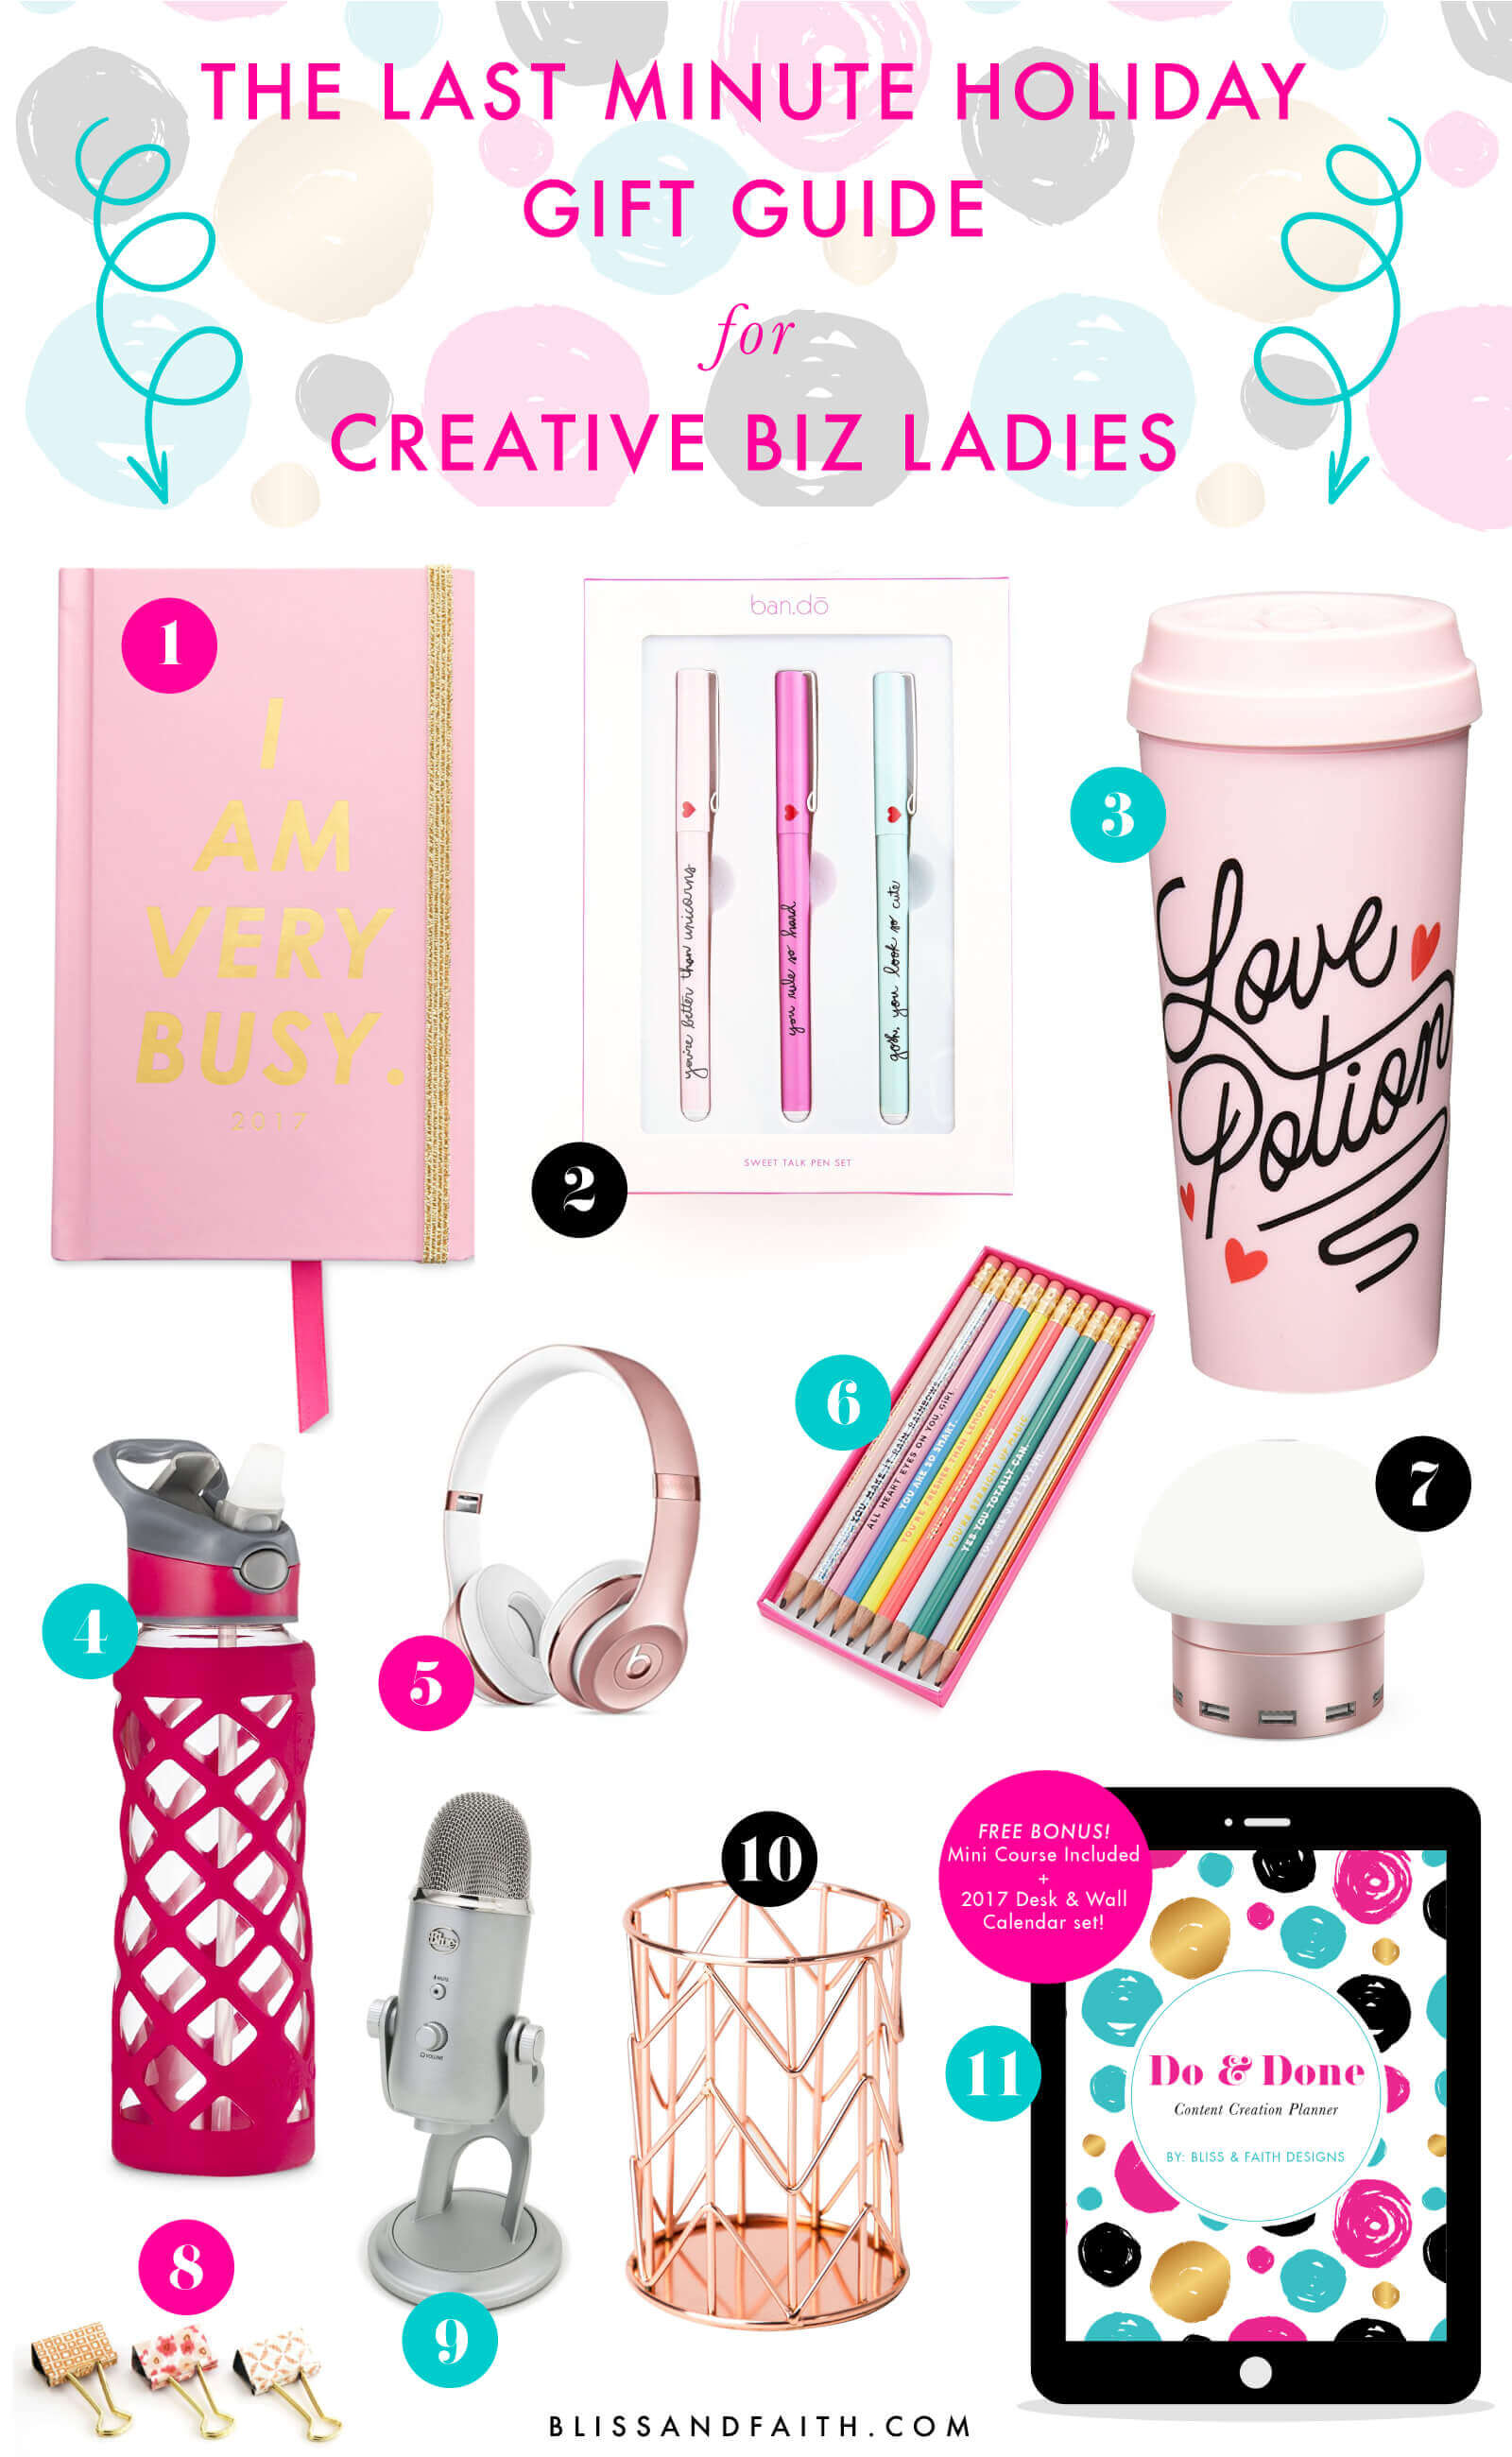 The Last Minute Holiday Gift Guide for Creative Biz Ladies   BlissandFaith.com